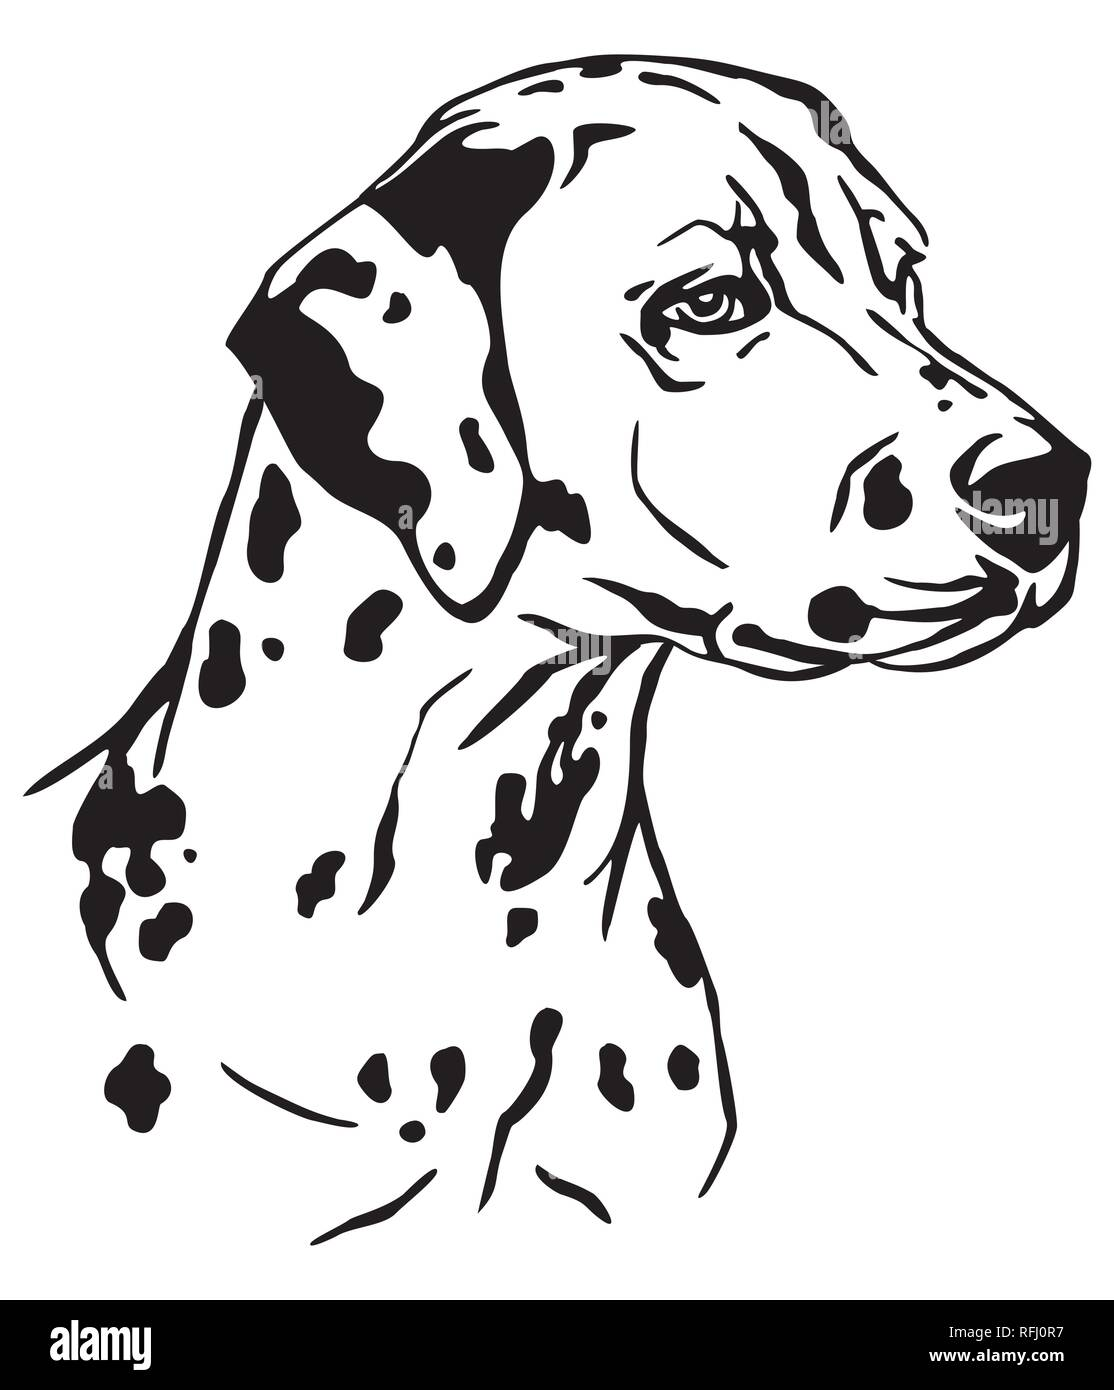 Decorative outline portrait of Dog Dalmatian in profile, vector illustration in black color isolated on white background. Image for design and tattoo. - Stock Vector